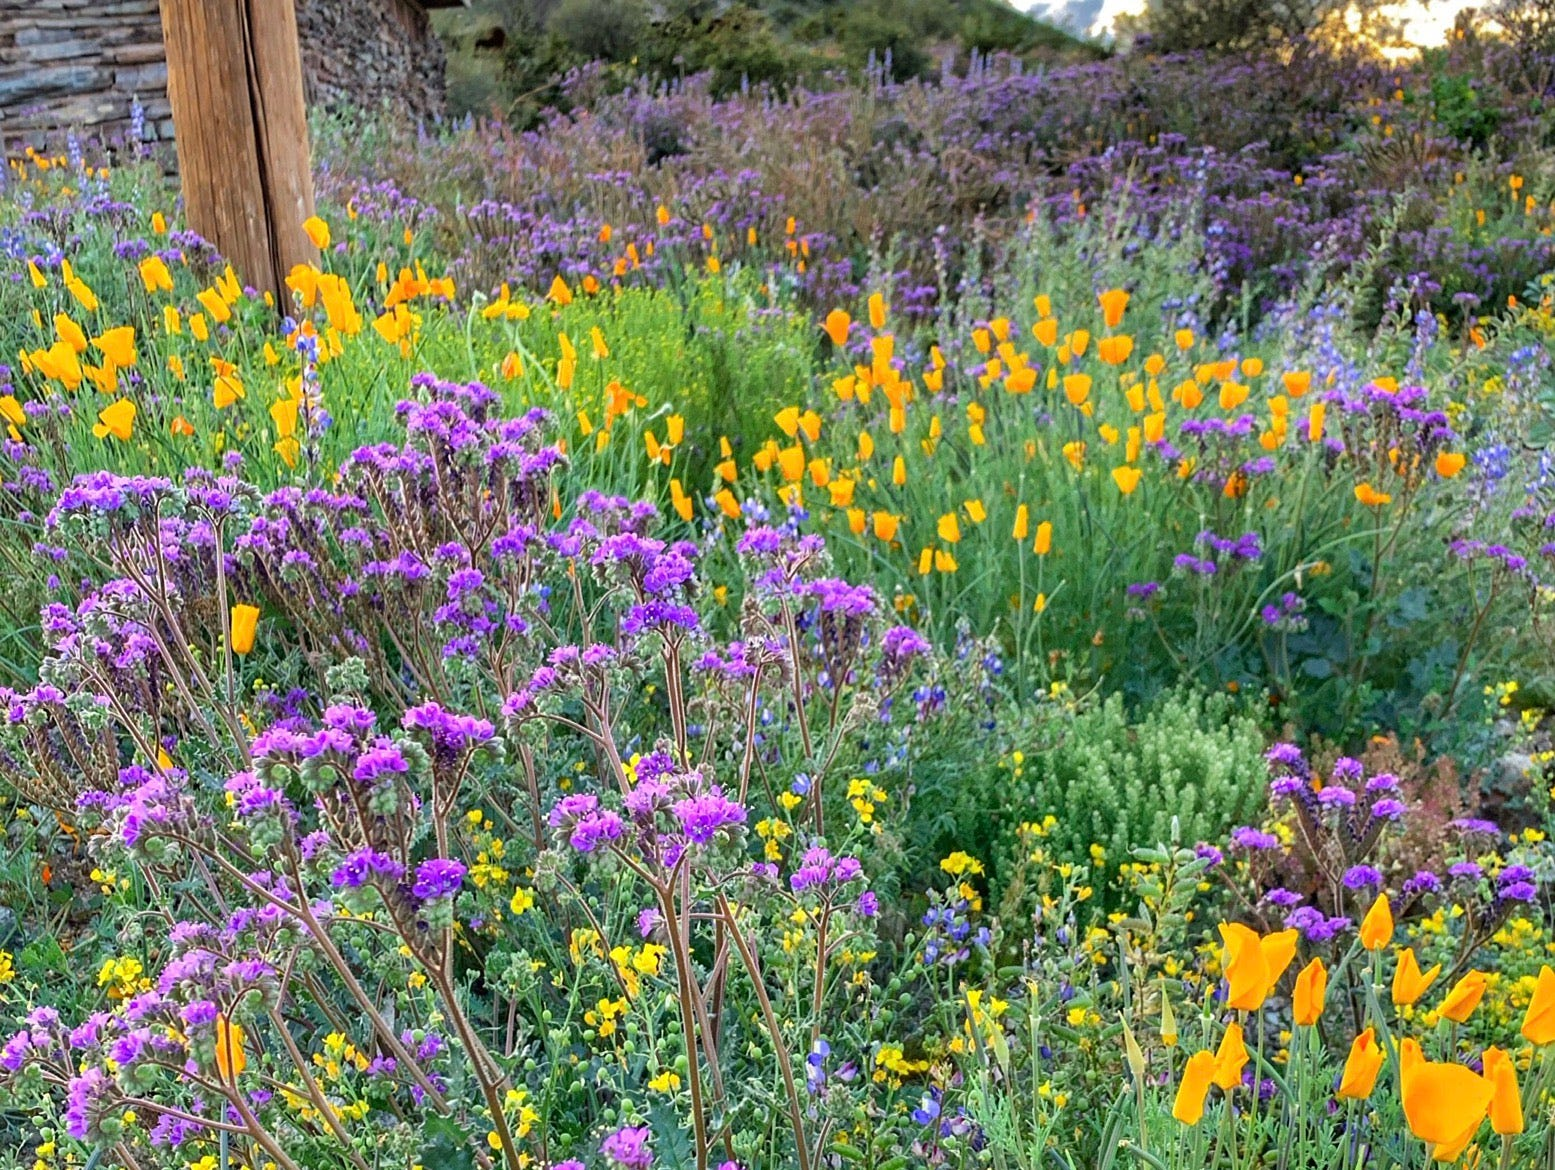 Wildflowers Super Bloom at South Mountain Park